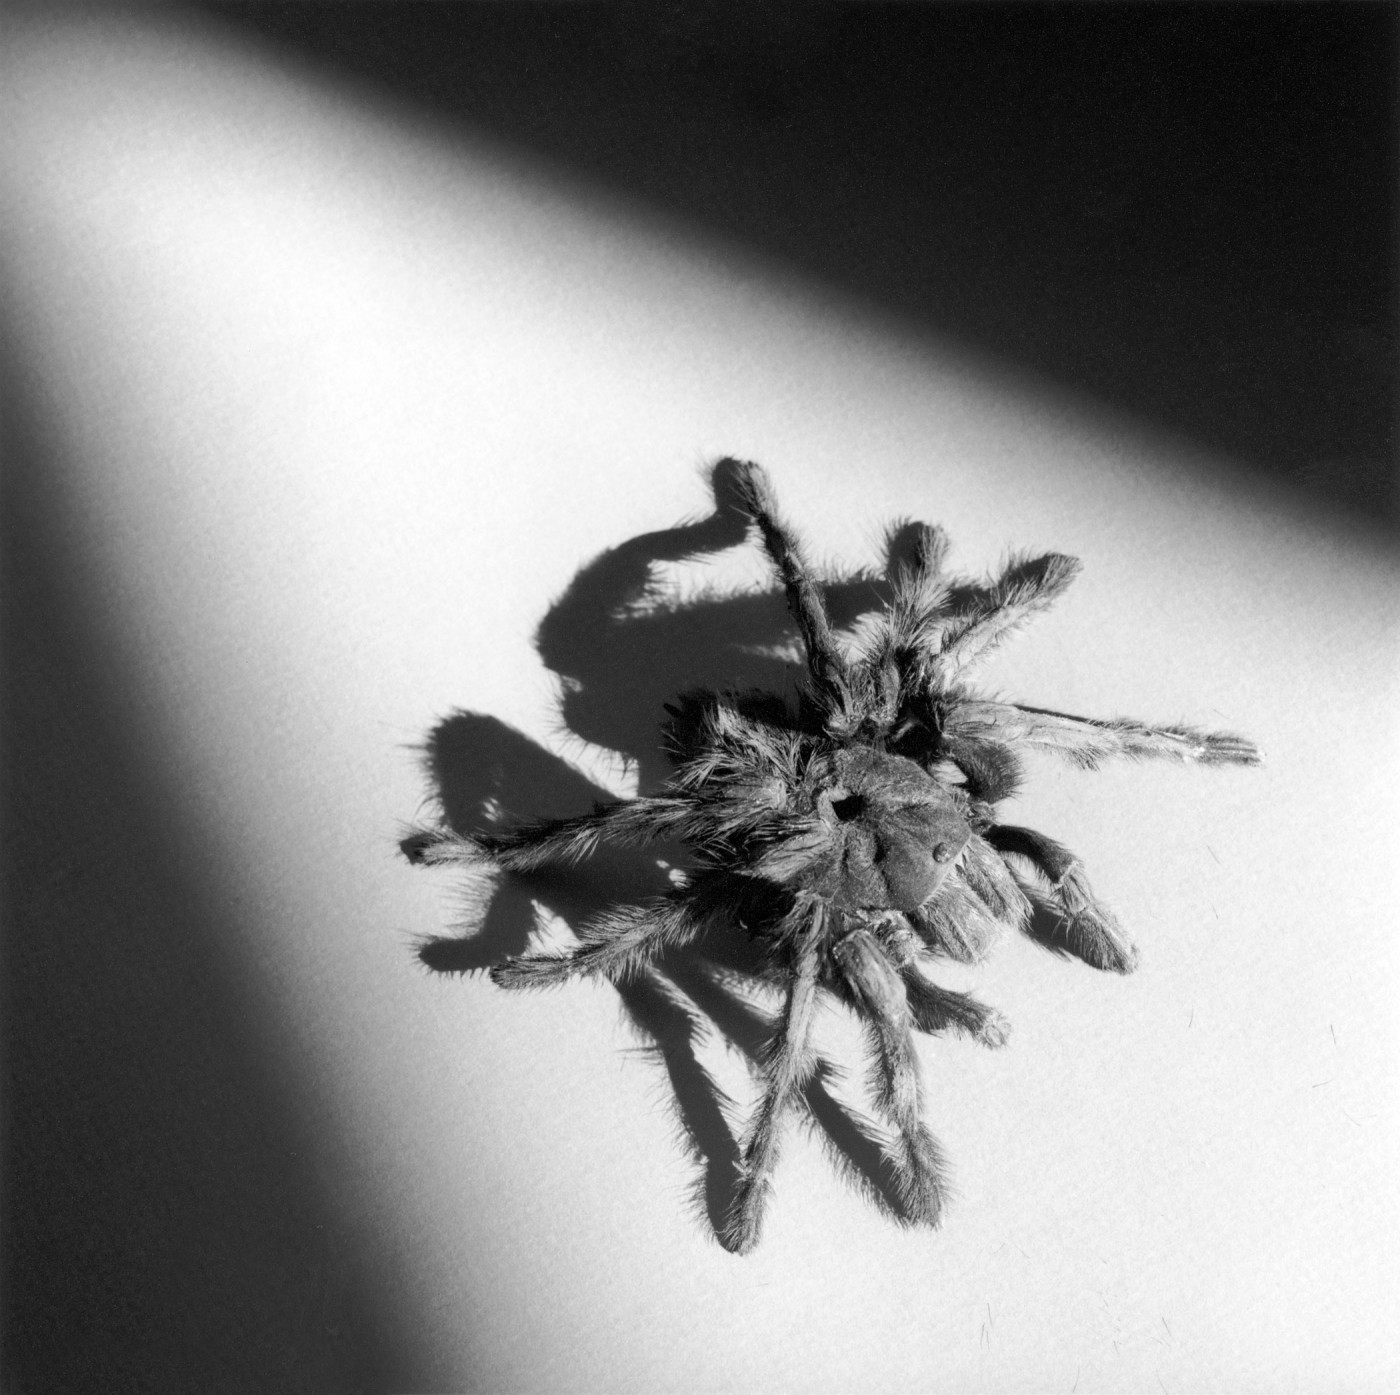 Robert Mapplethorpe, </span><span><em>Tarantula</em>, </span><span>1988 © Robert Mapplethorpe Foundation. Used by permission.